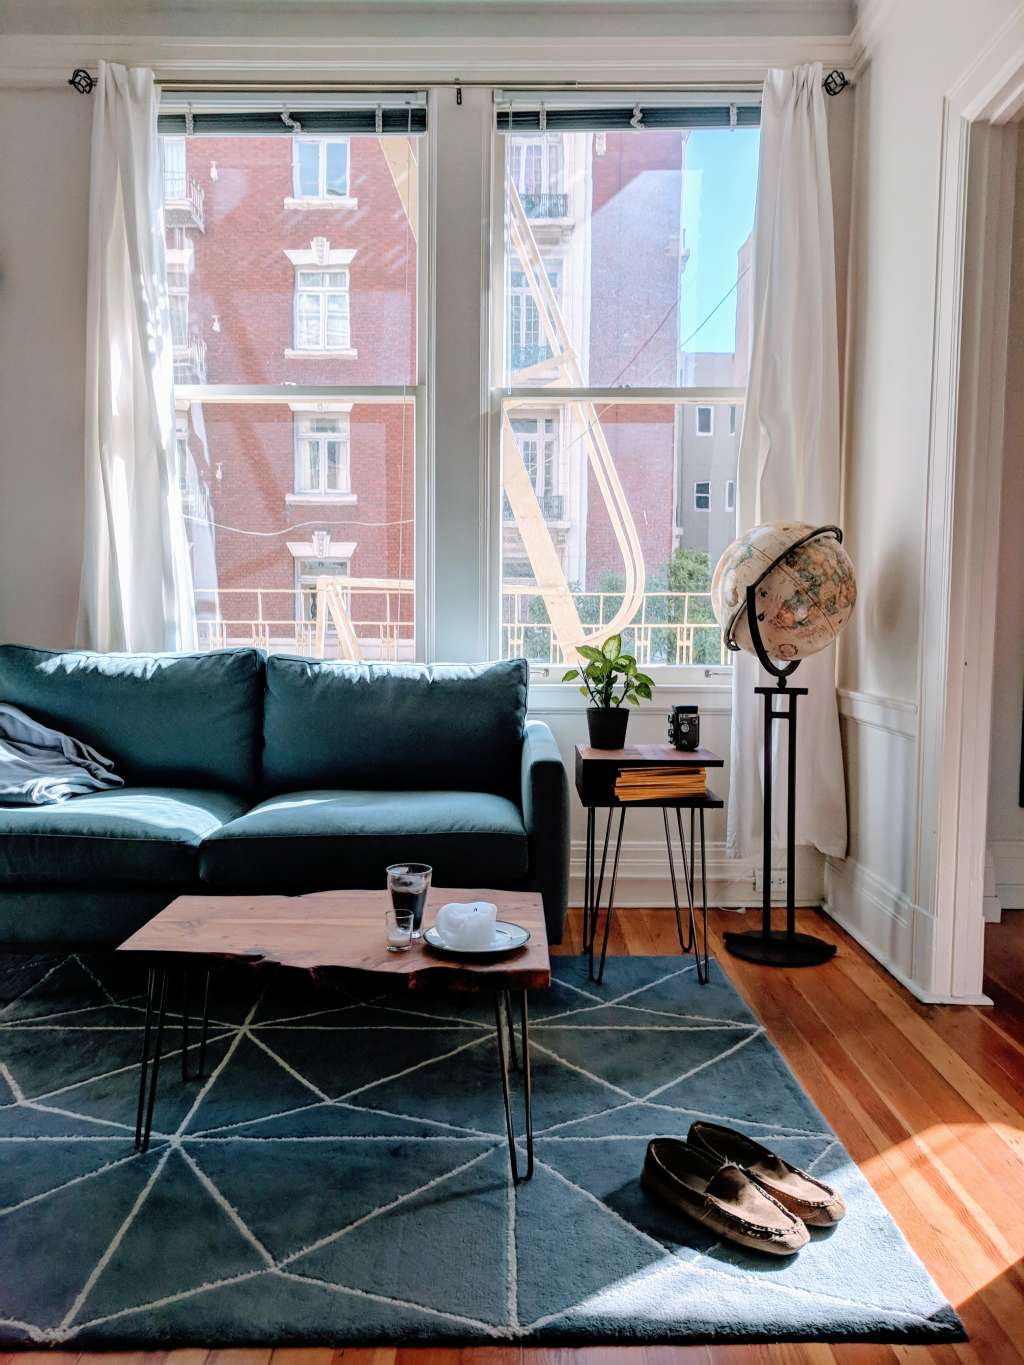 See Inside a 400-Square-Foot San Francisco Studio Apartment